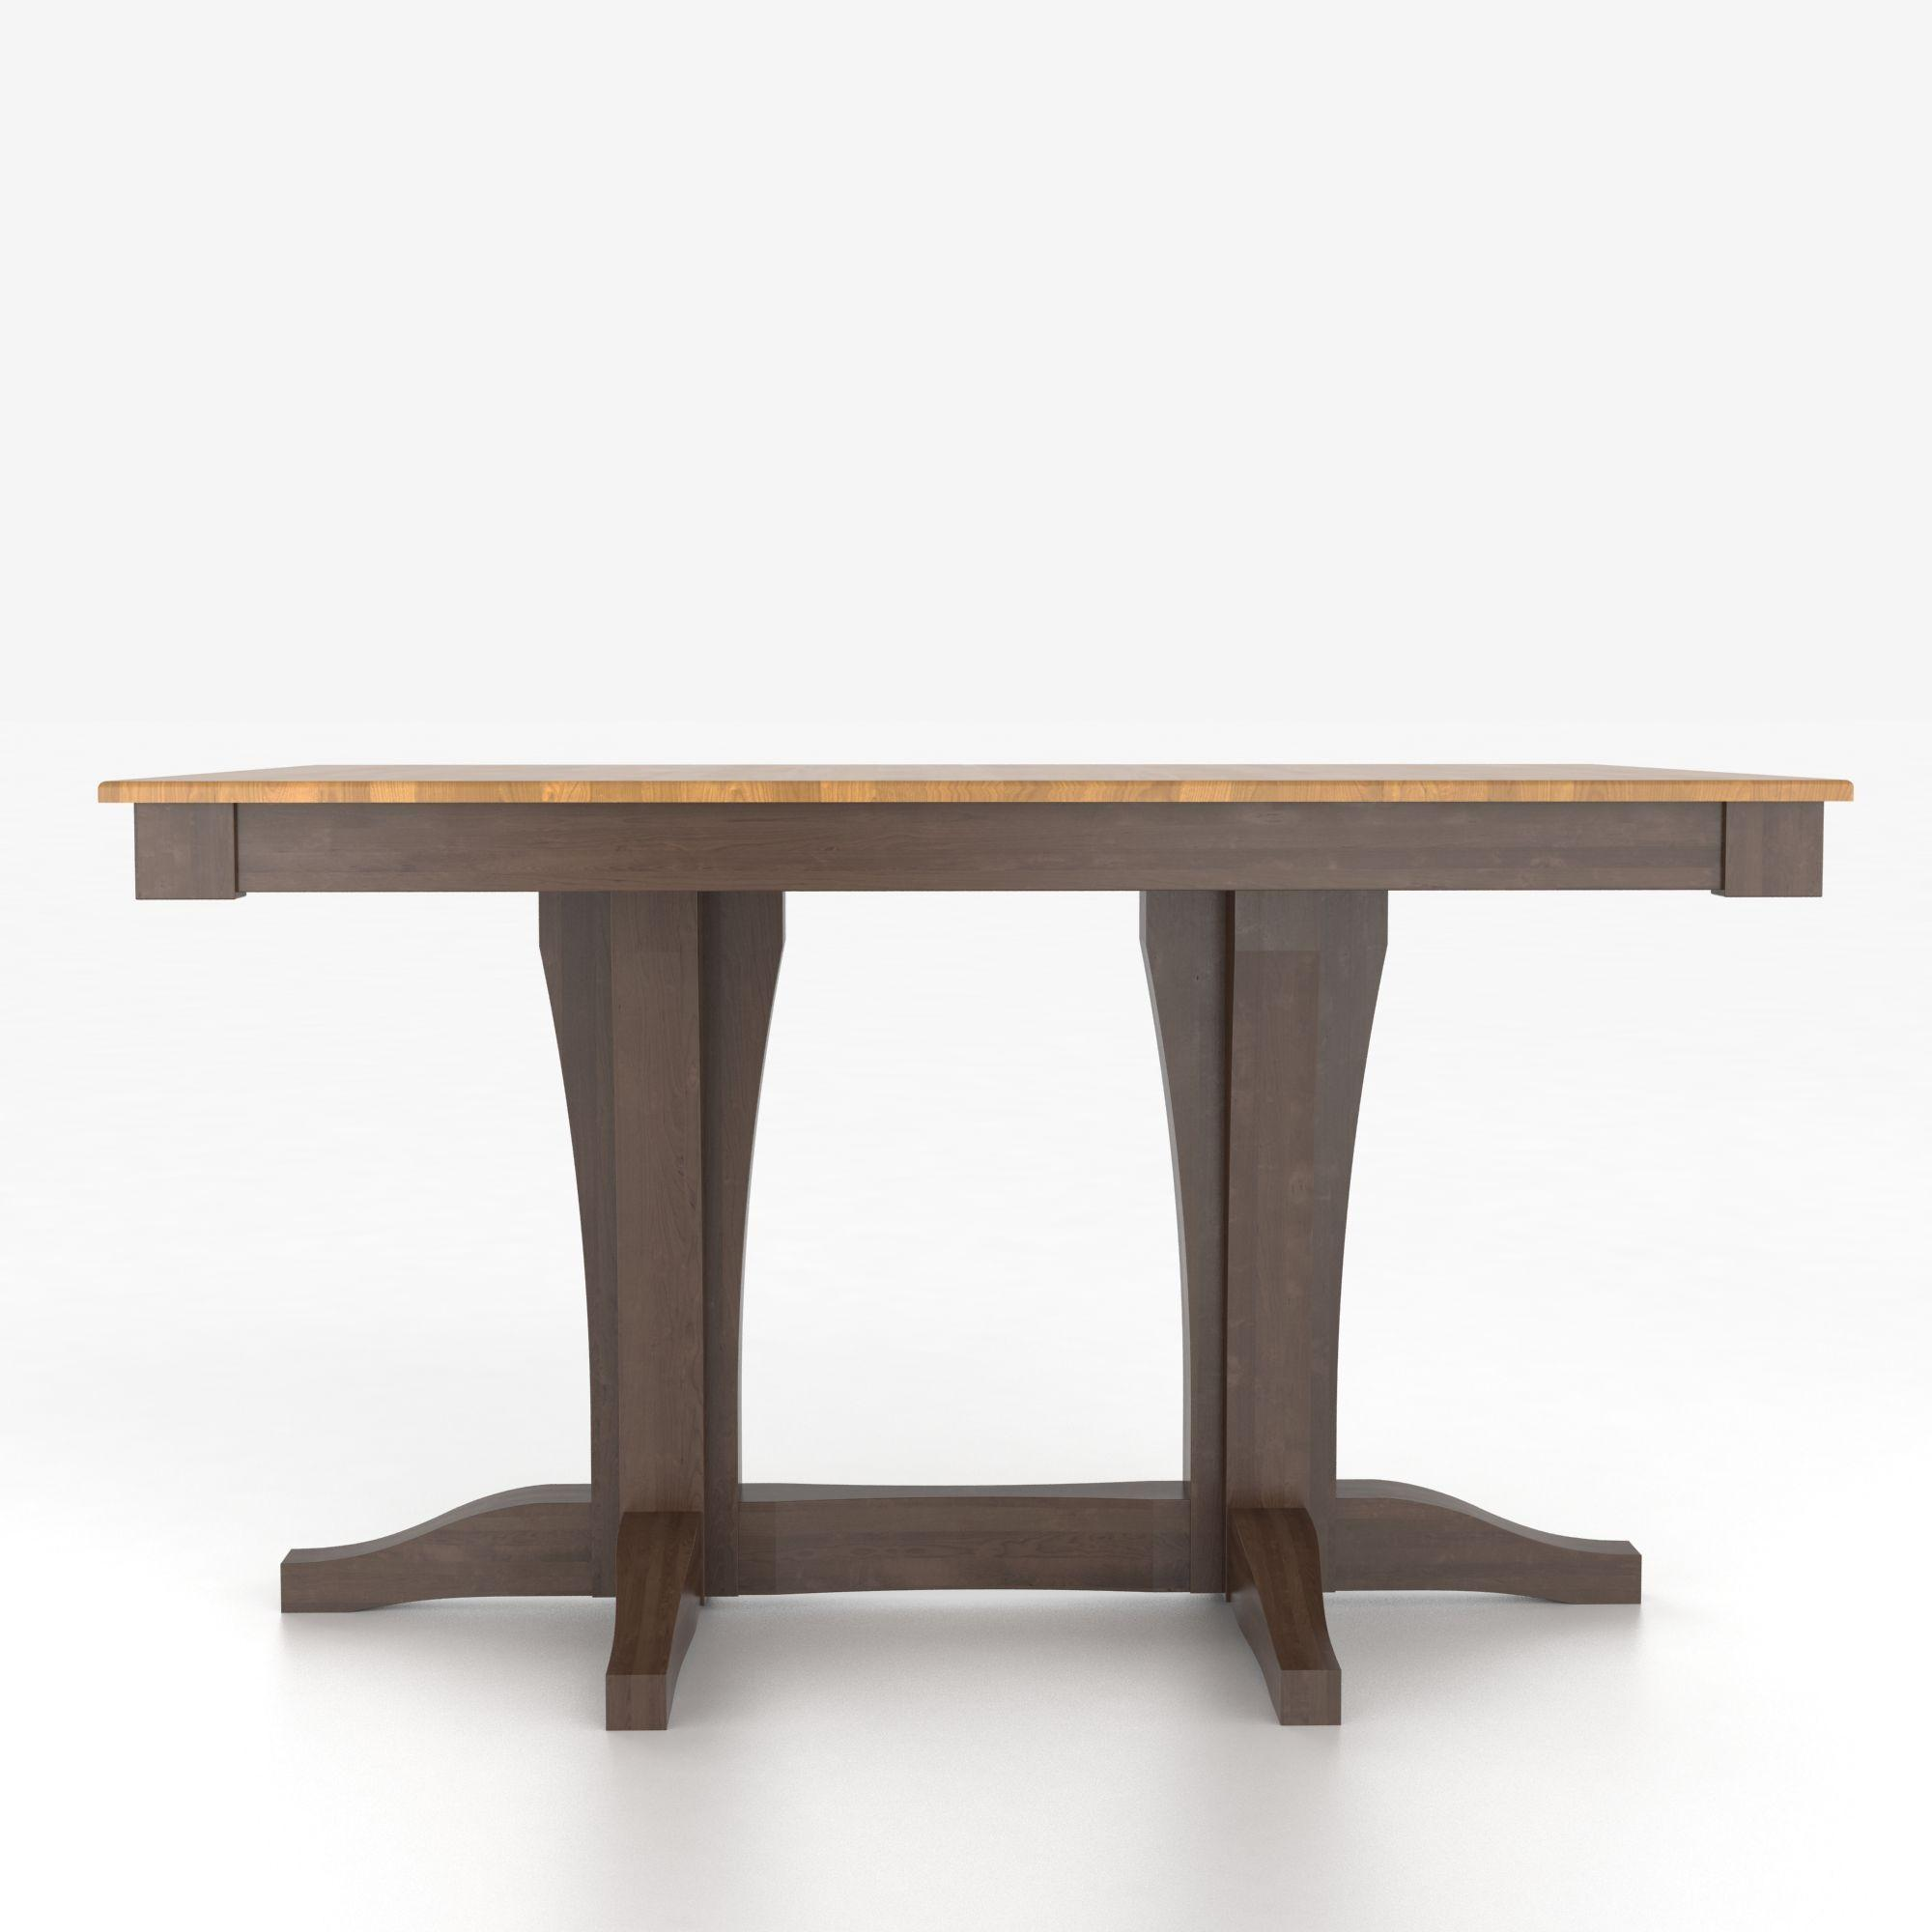 Canadel custom dining tables tre036680129mxkdf for John v schultz dining room table